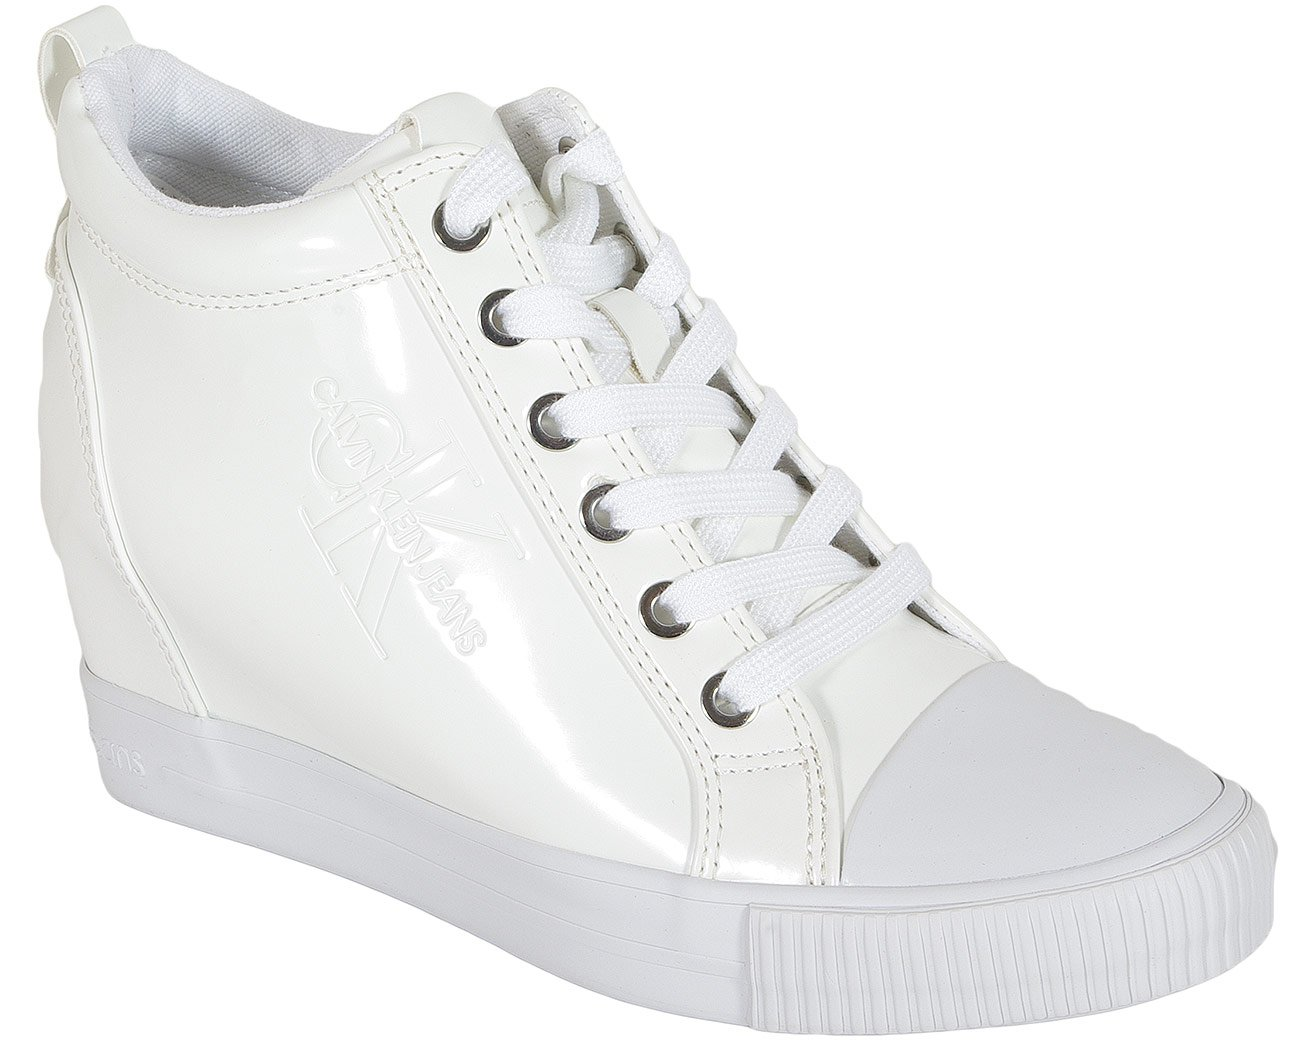 Calvin Klein Jeans Ritzy sneakers patent white